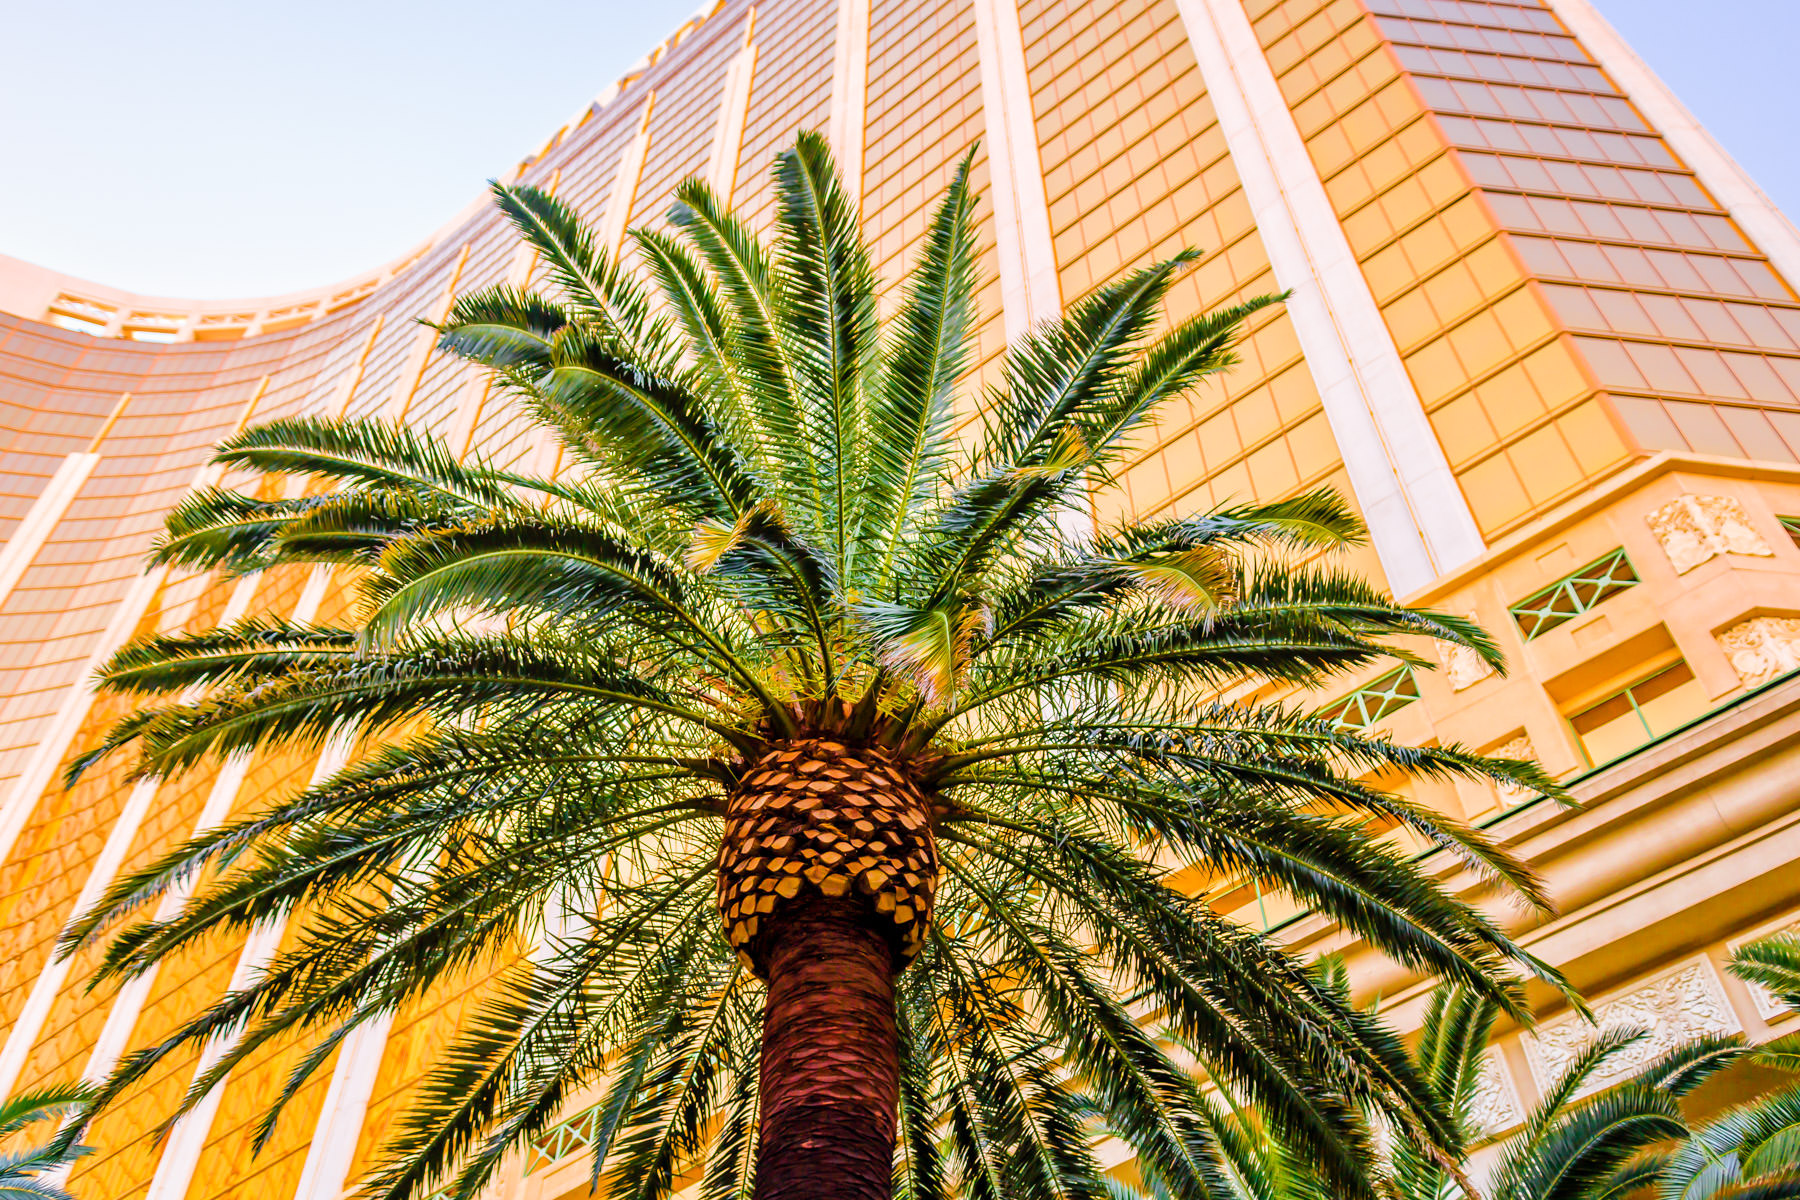 A palm tree is dwarfed by Las Vegas' 43-story-tall Mandalay Bay Resort and Casino.